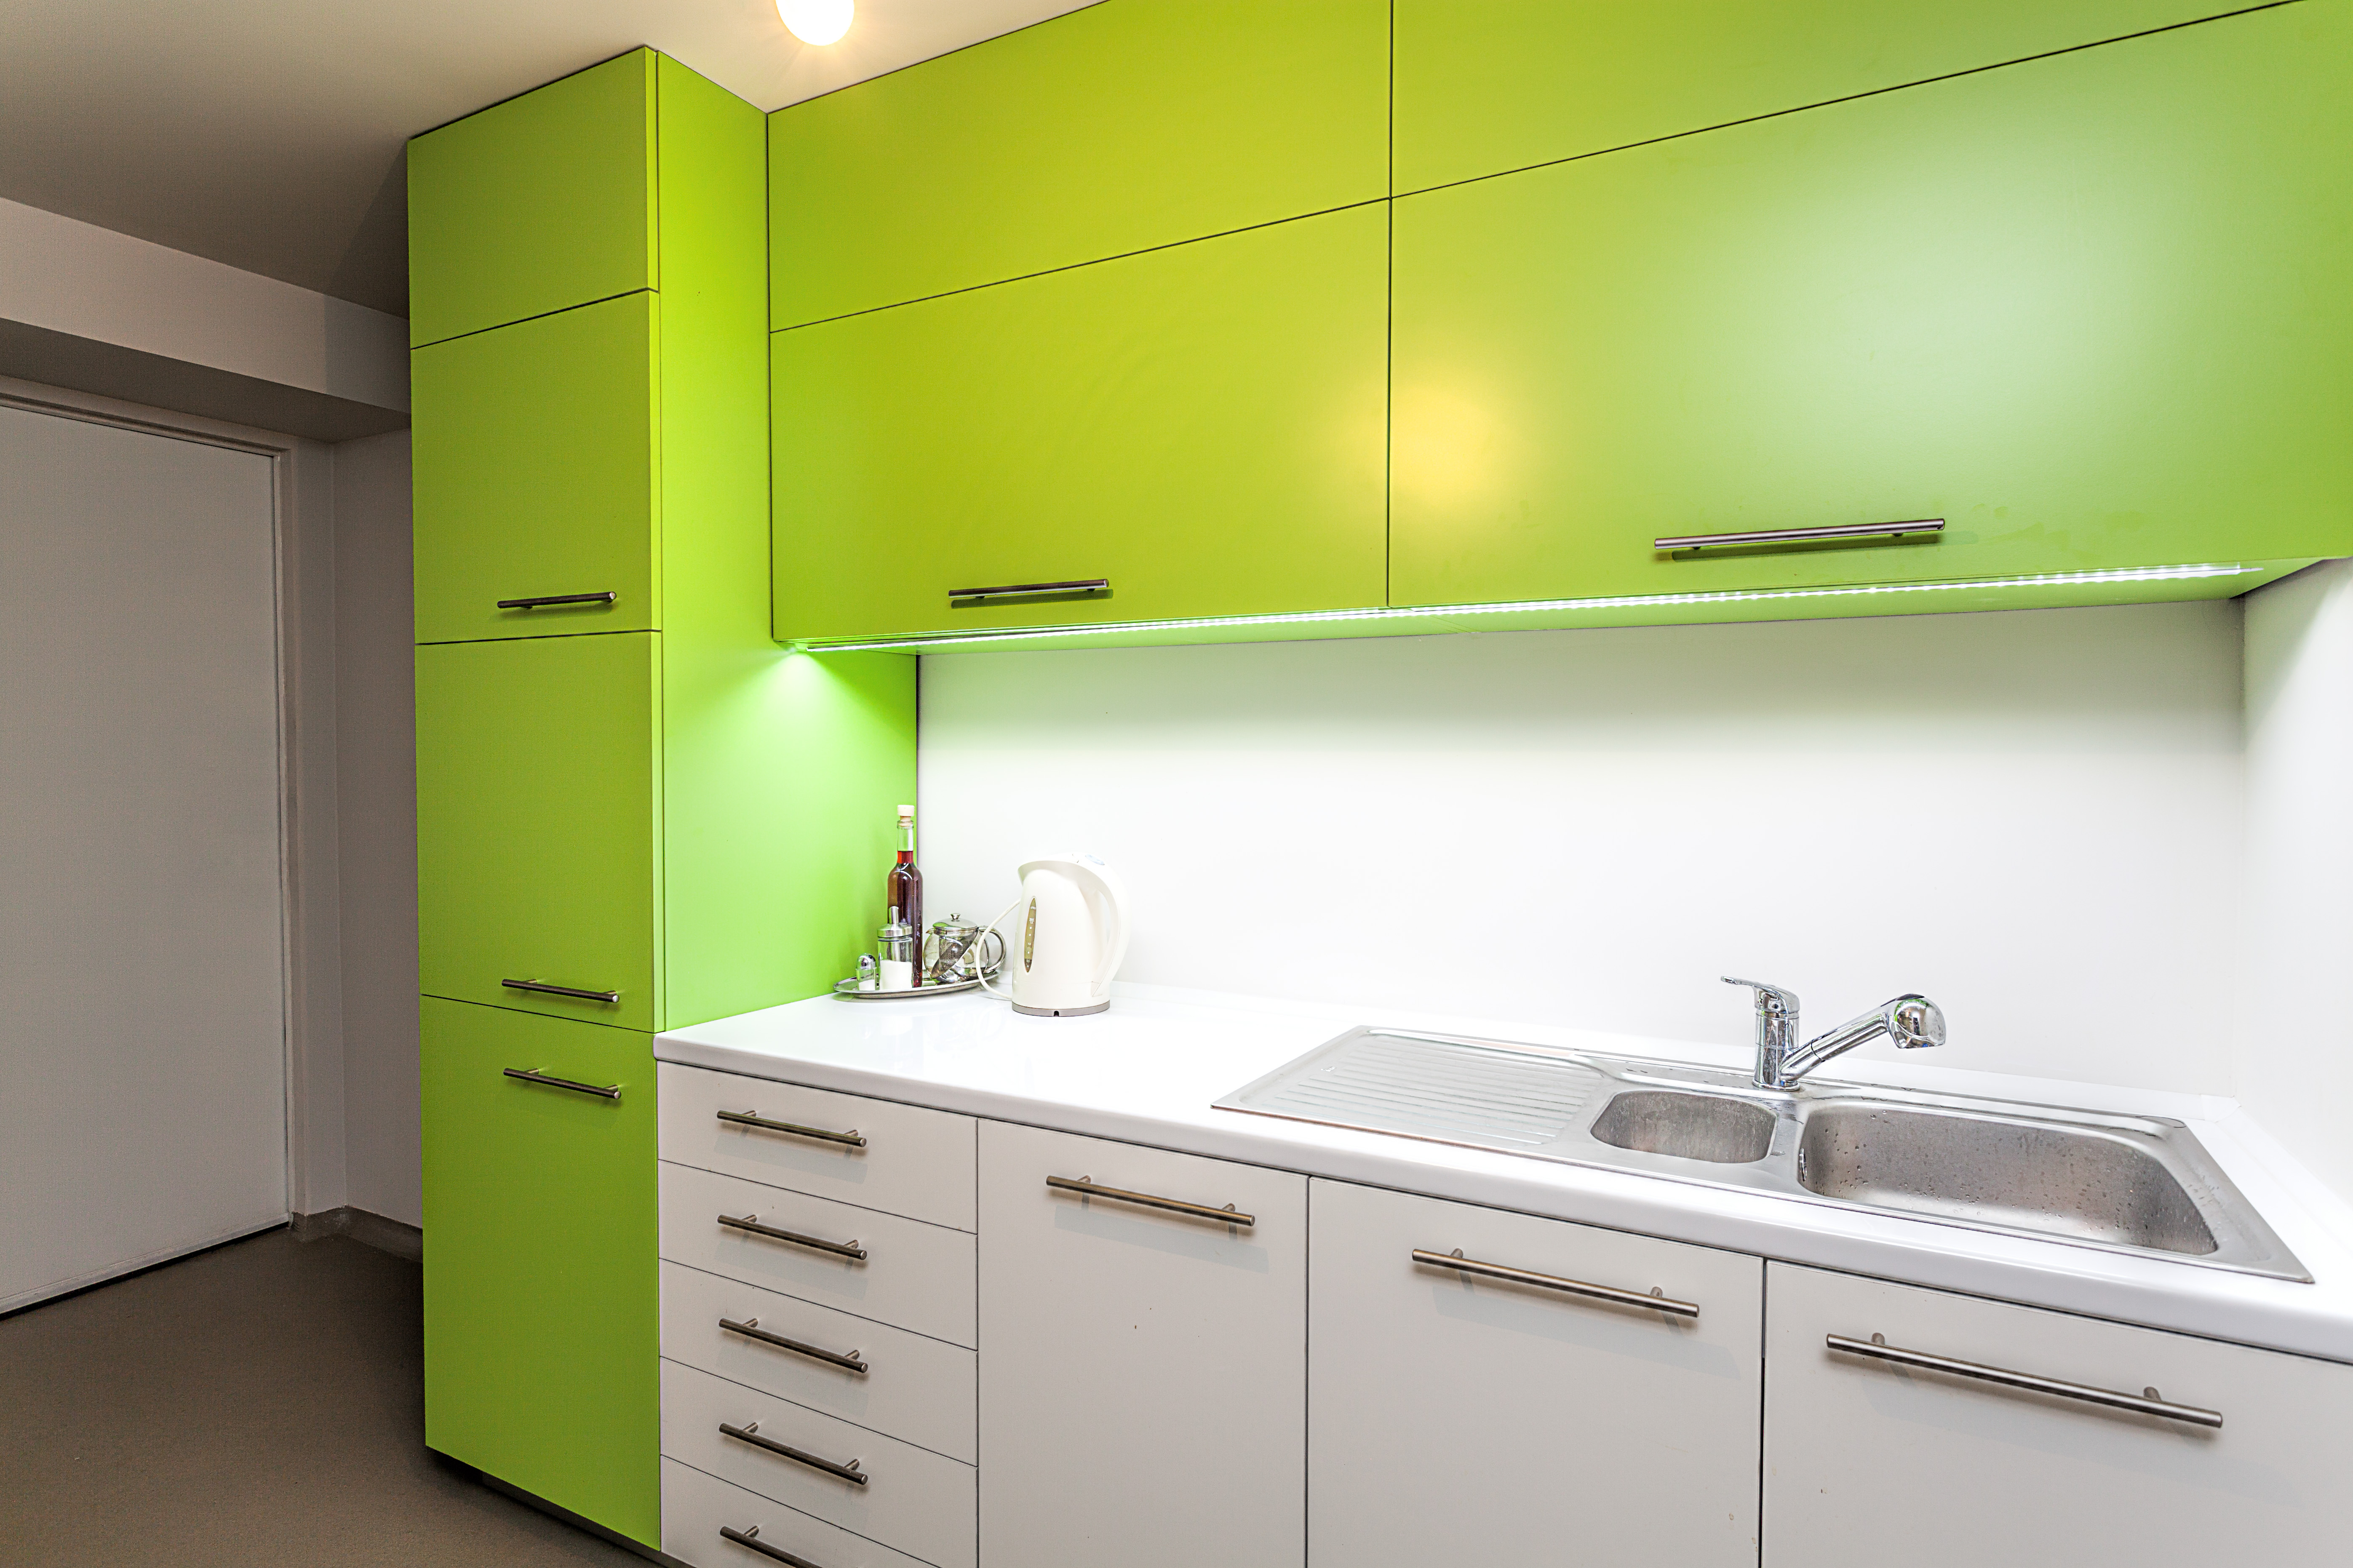 A modern kitchen with slab style wall cabinets and base cabinets.